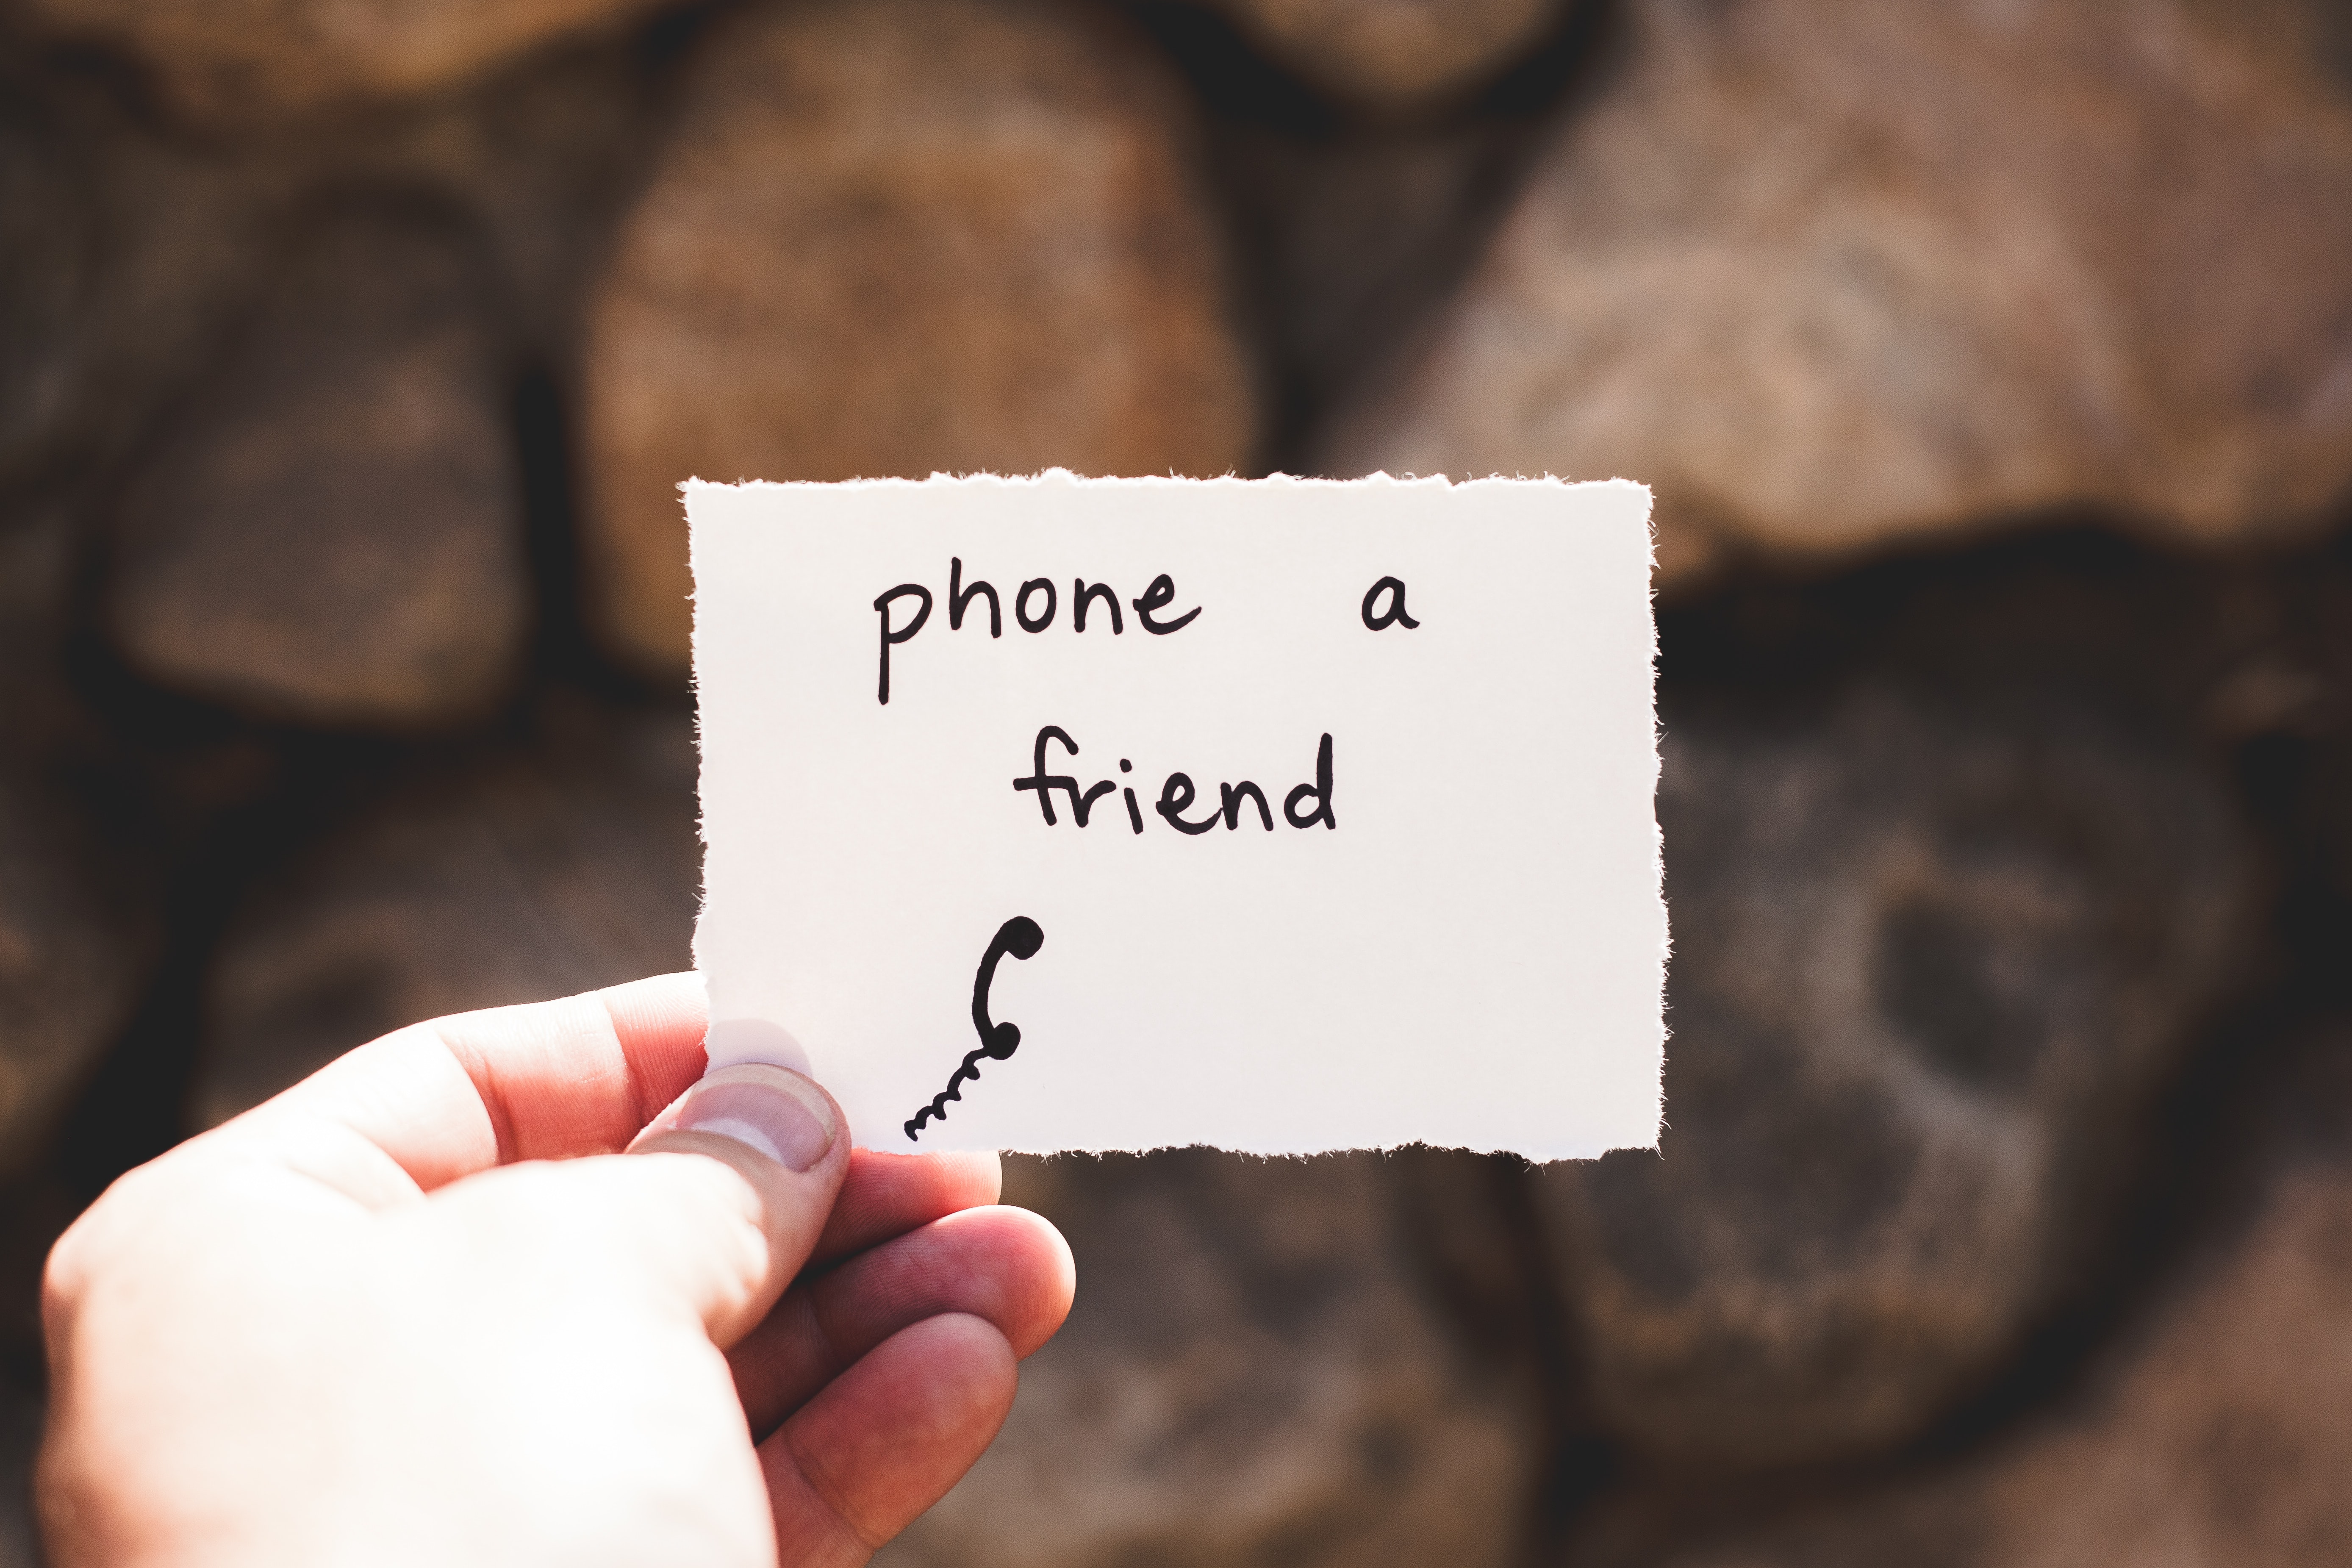 stay connected to friends